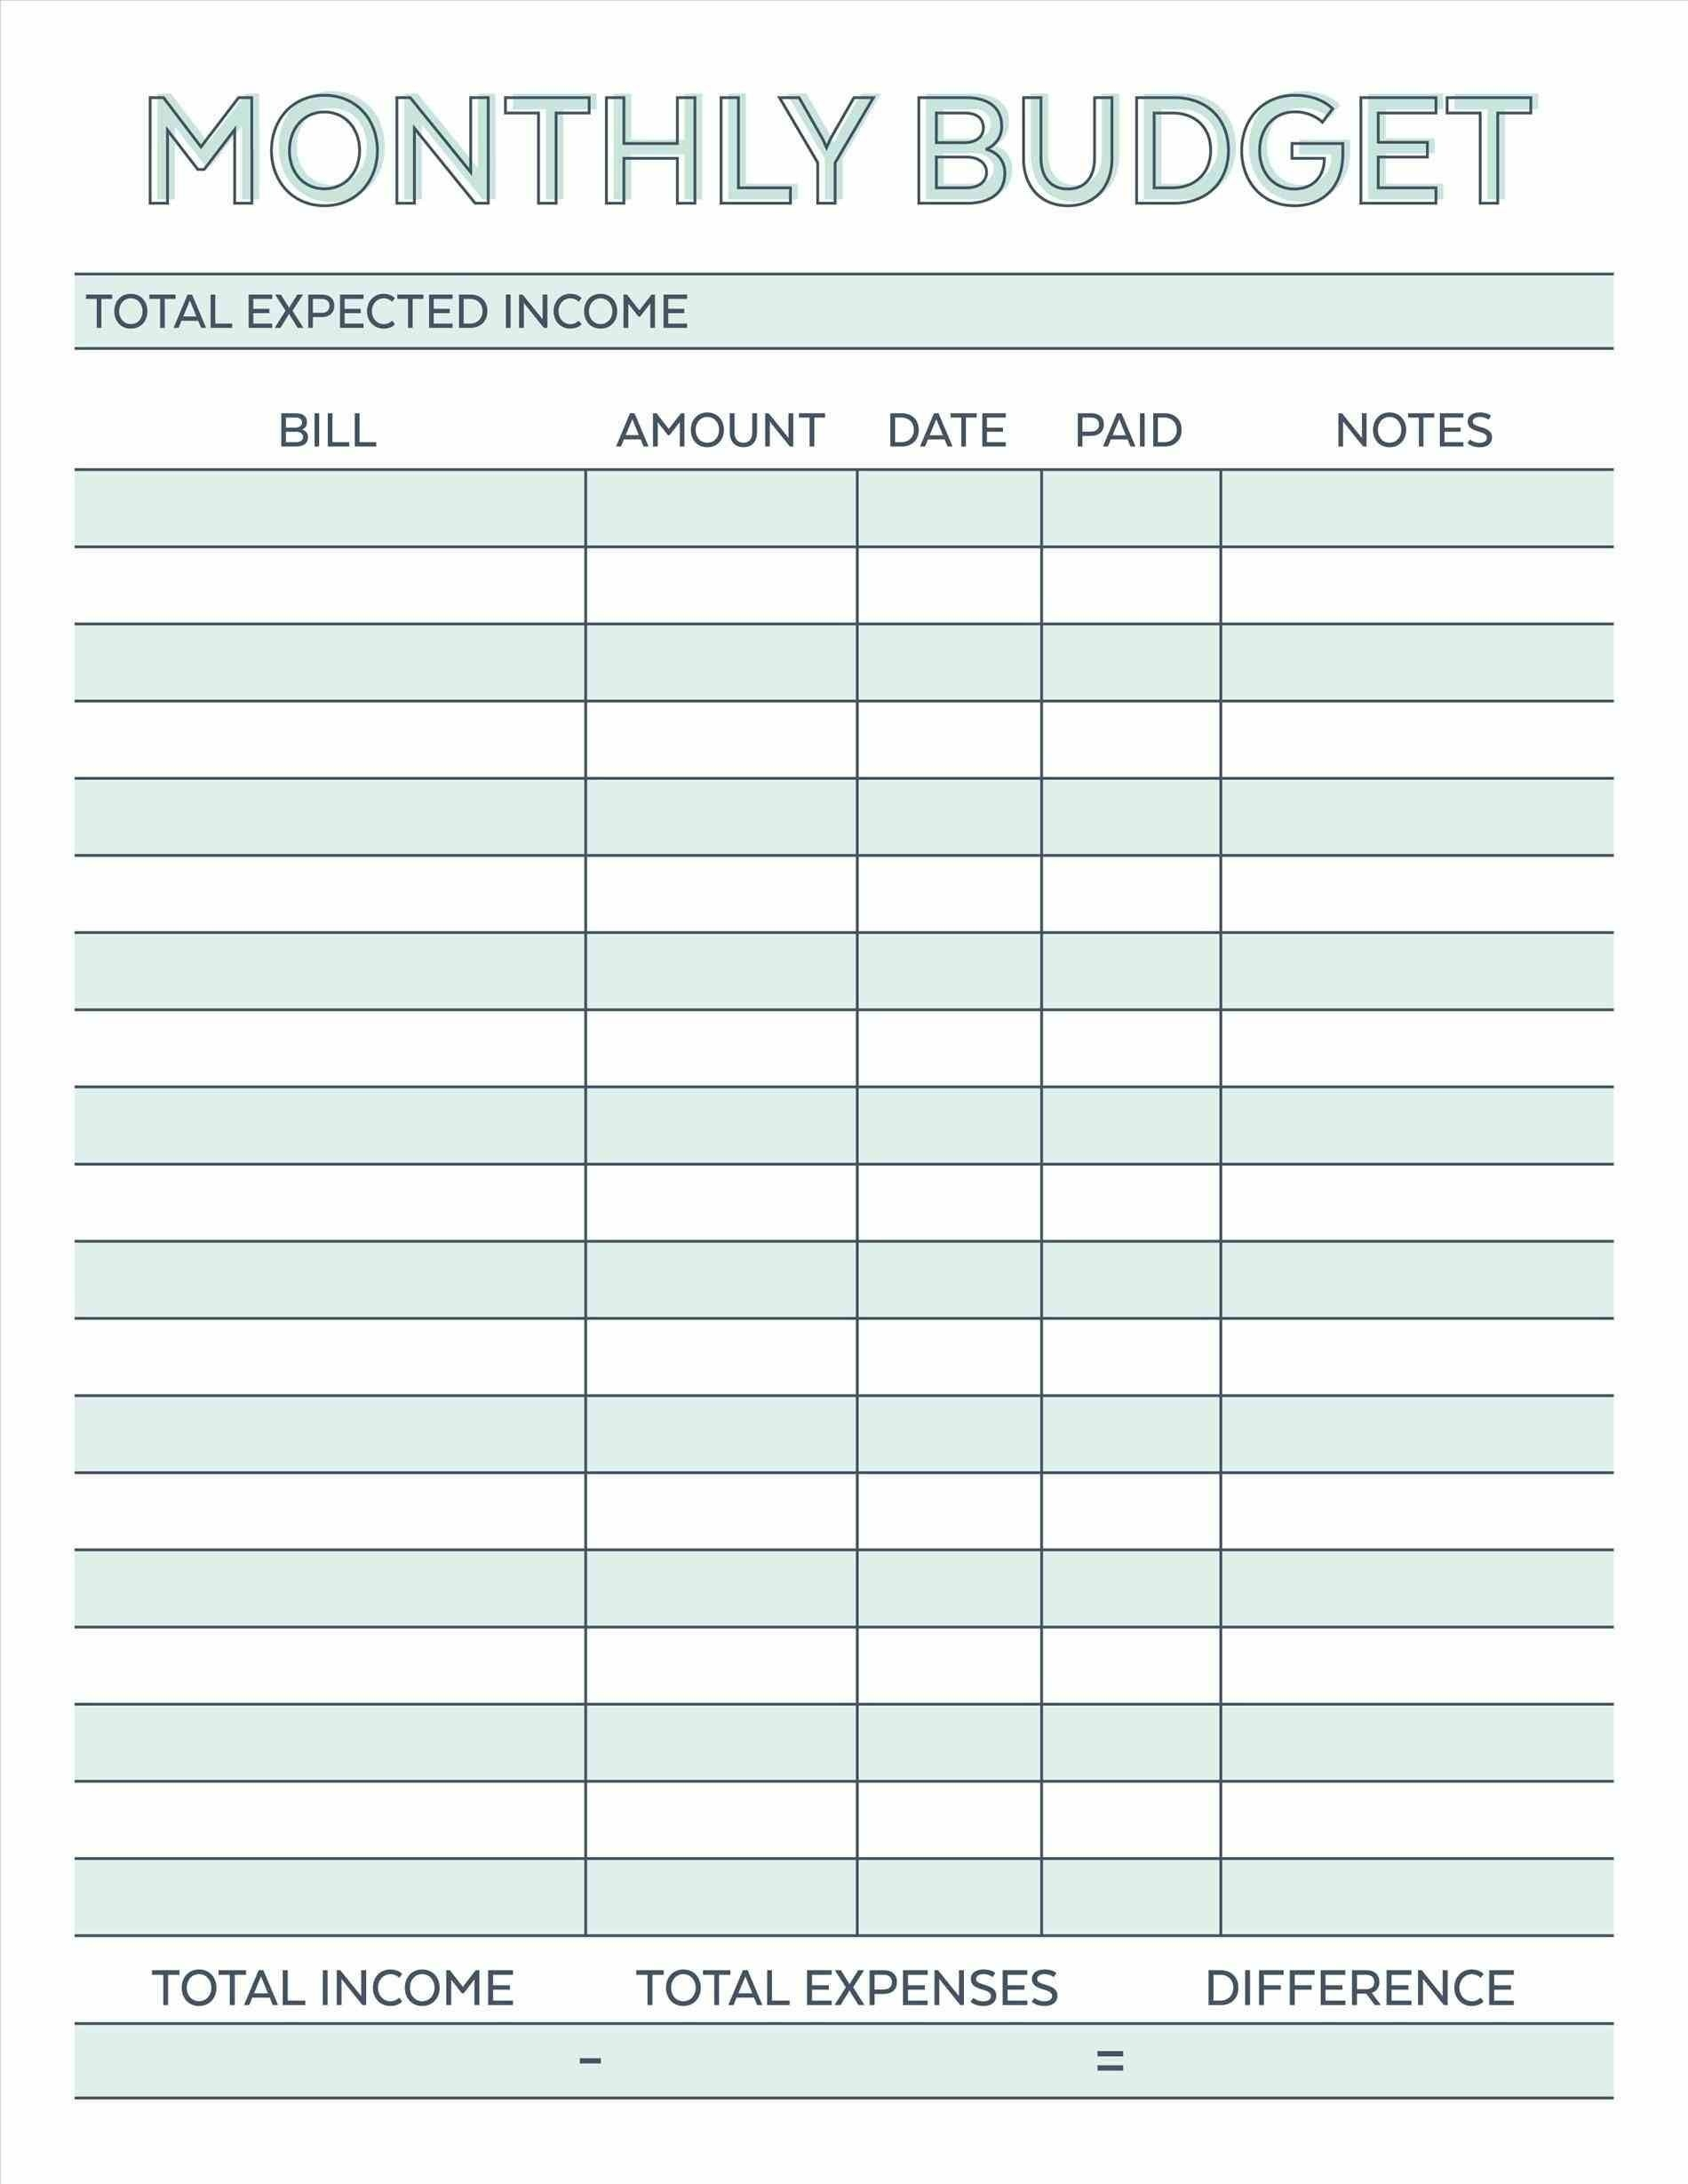 Image Result For Free Monthly Budget Template | Budget  Free Downloadable Monthly Bills Worksheet